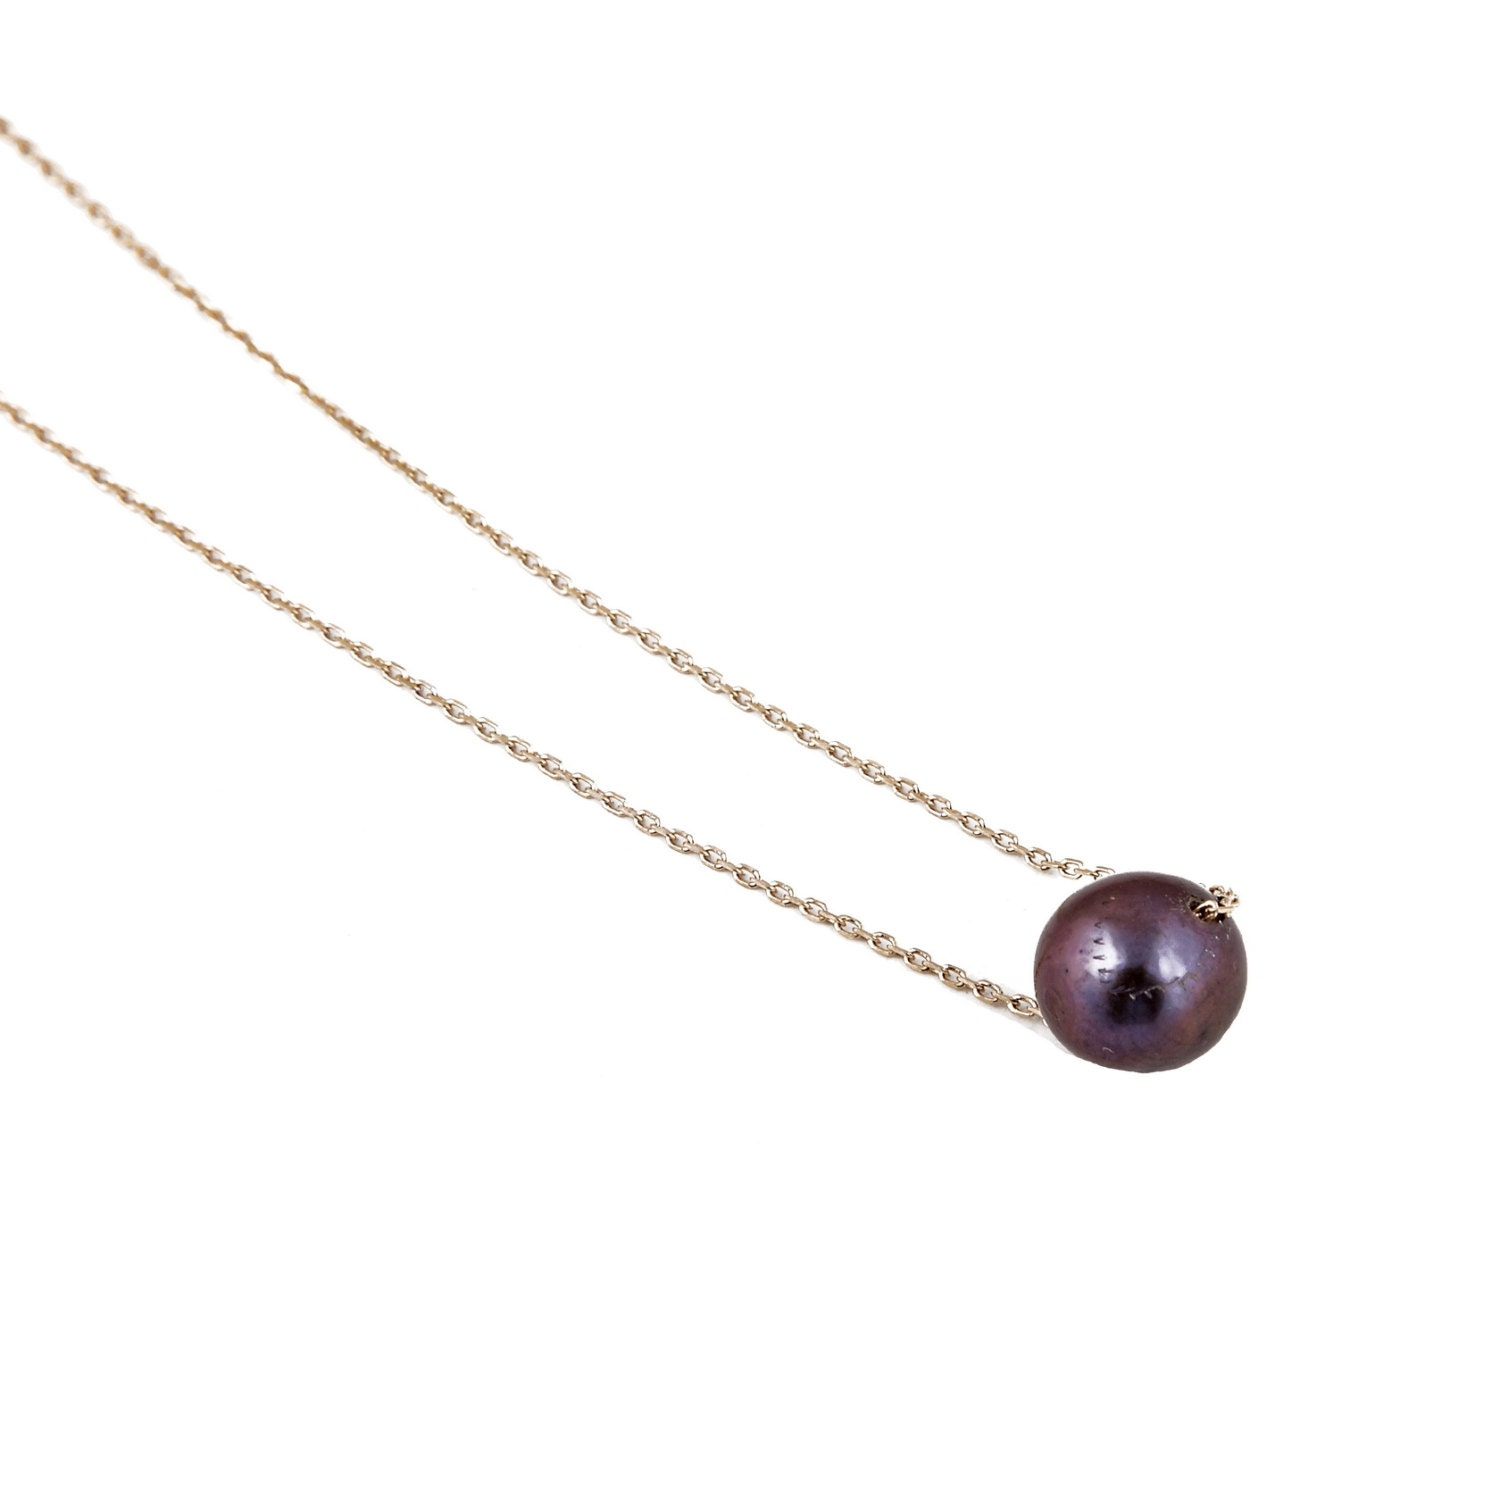 Gold Pearl Necklace, Thin Choker Pearl, Single Pearl Necklace, Floating  Necklace, Single Black Pearl, Solid Gold 14k